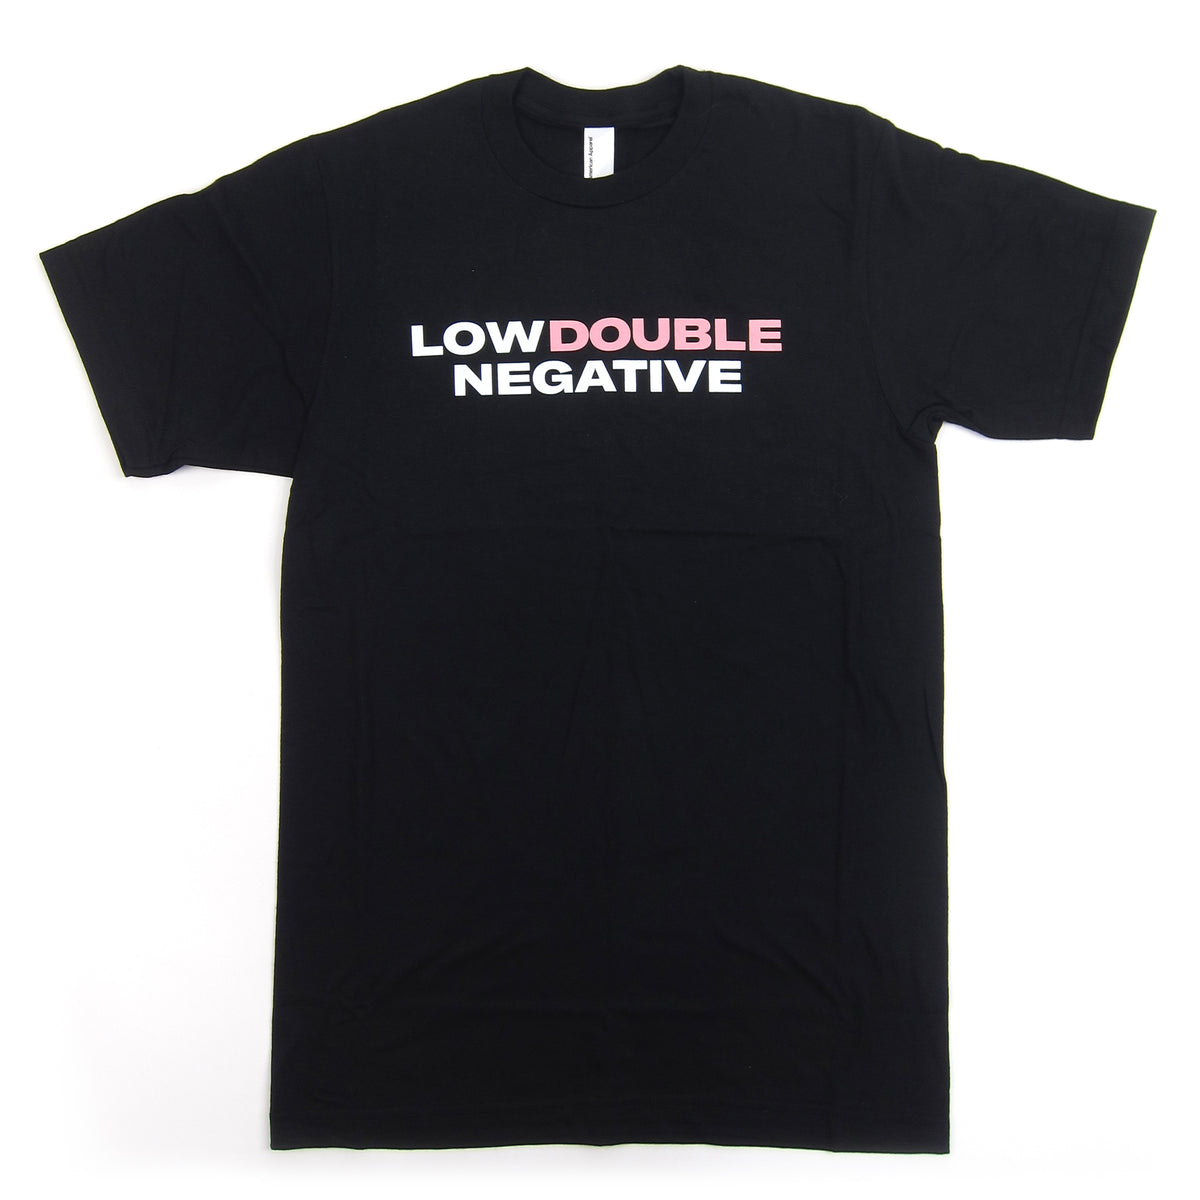 Sub Pop Records: Low Double Negative Shirt - Black